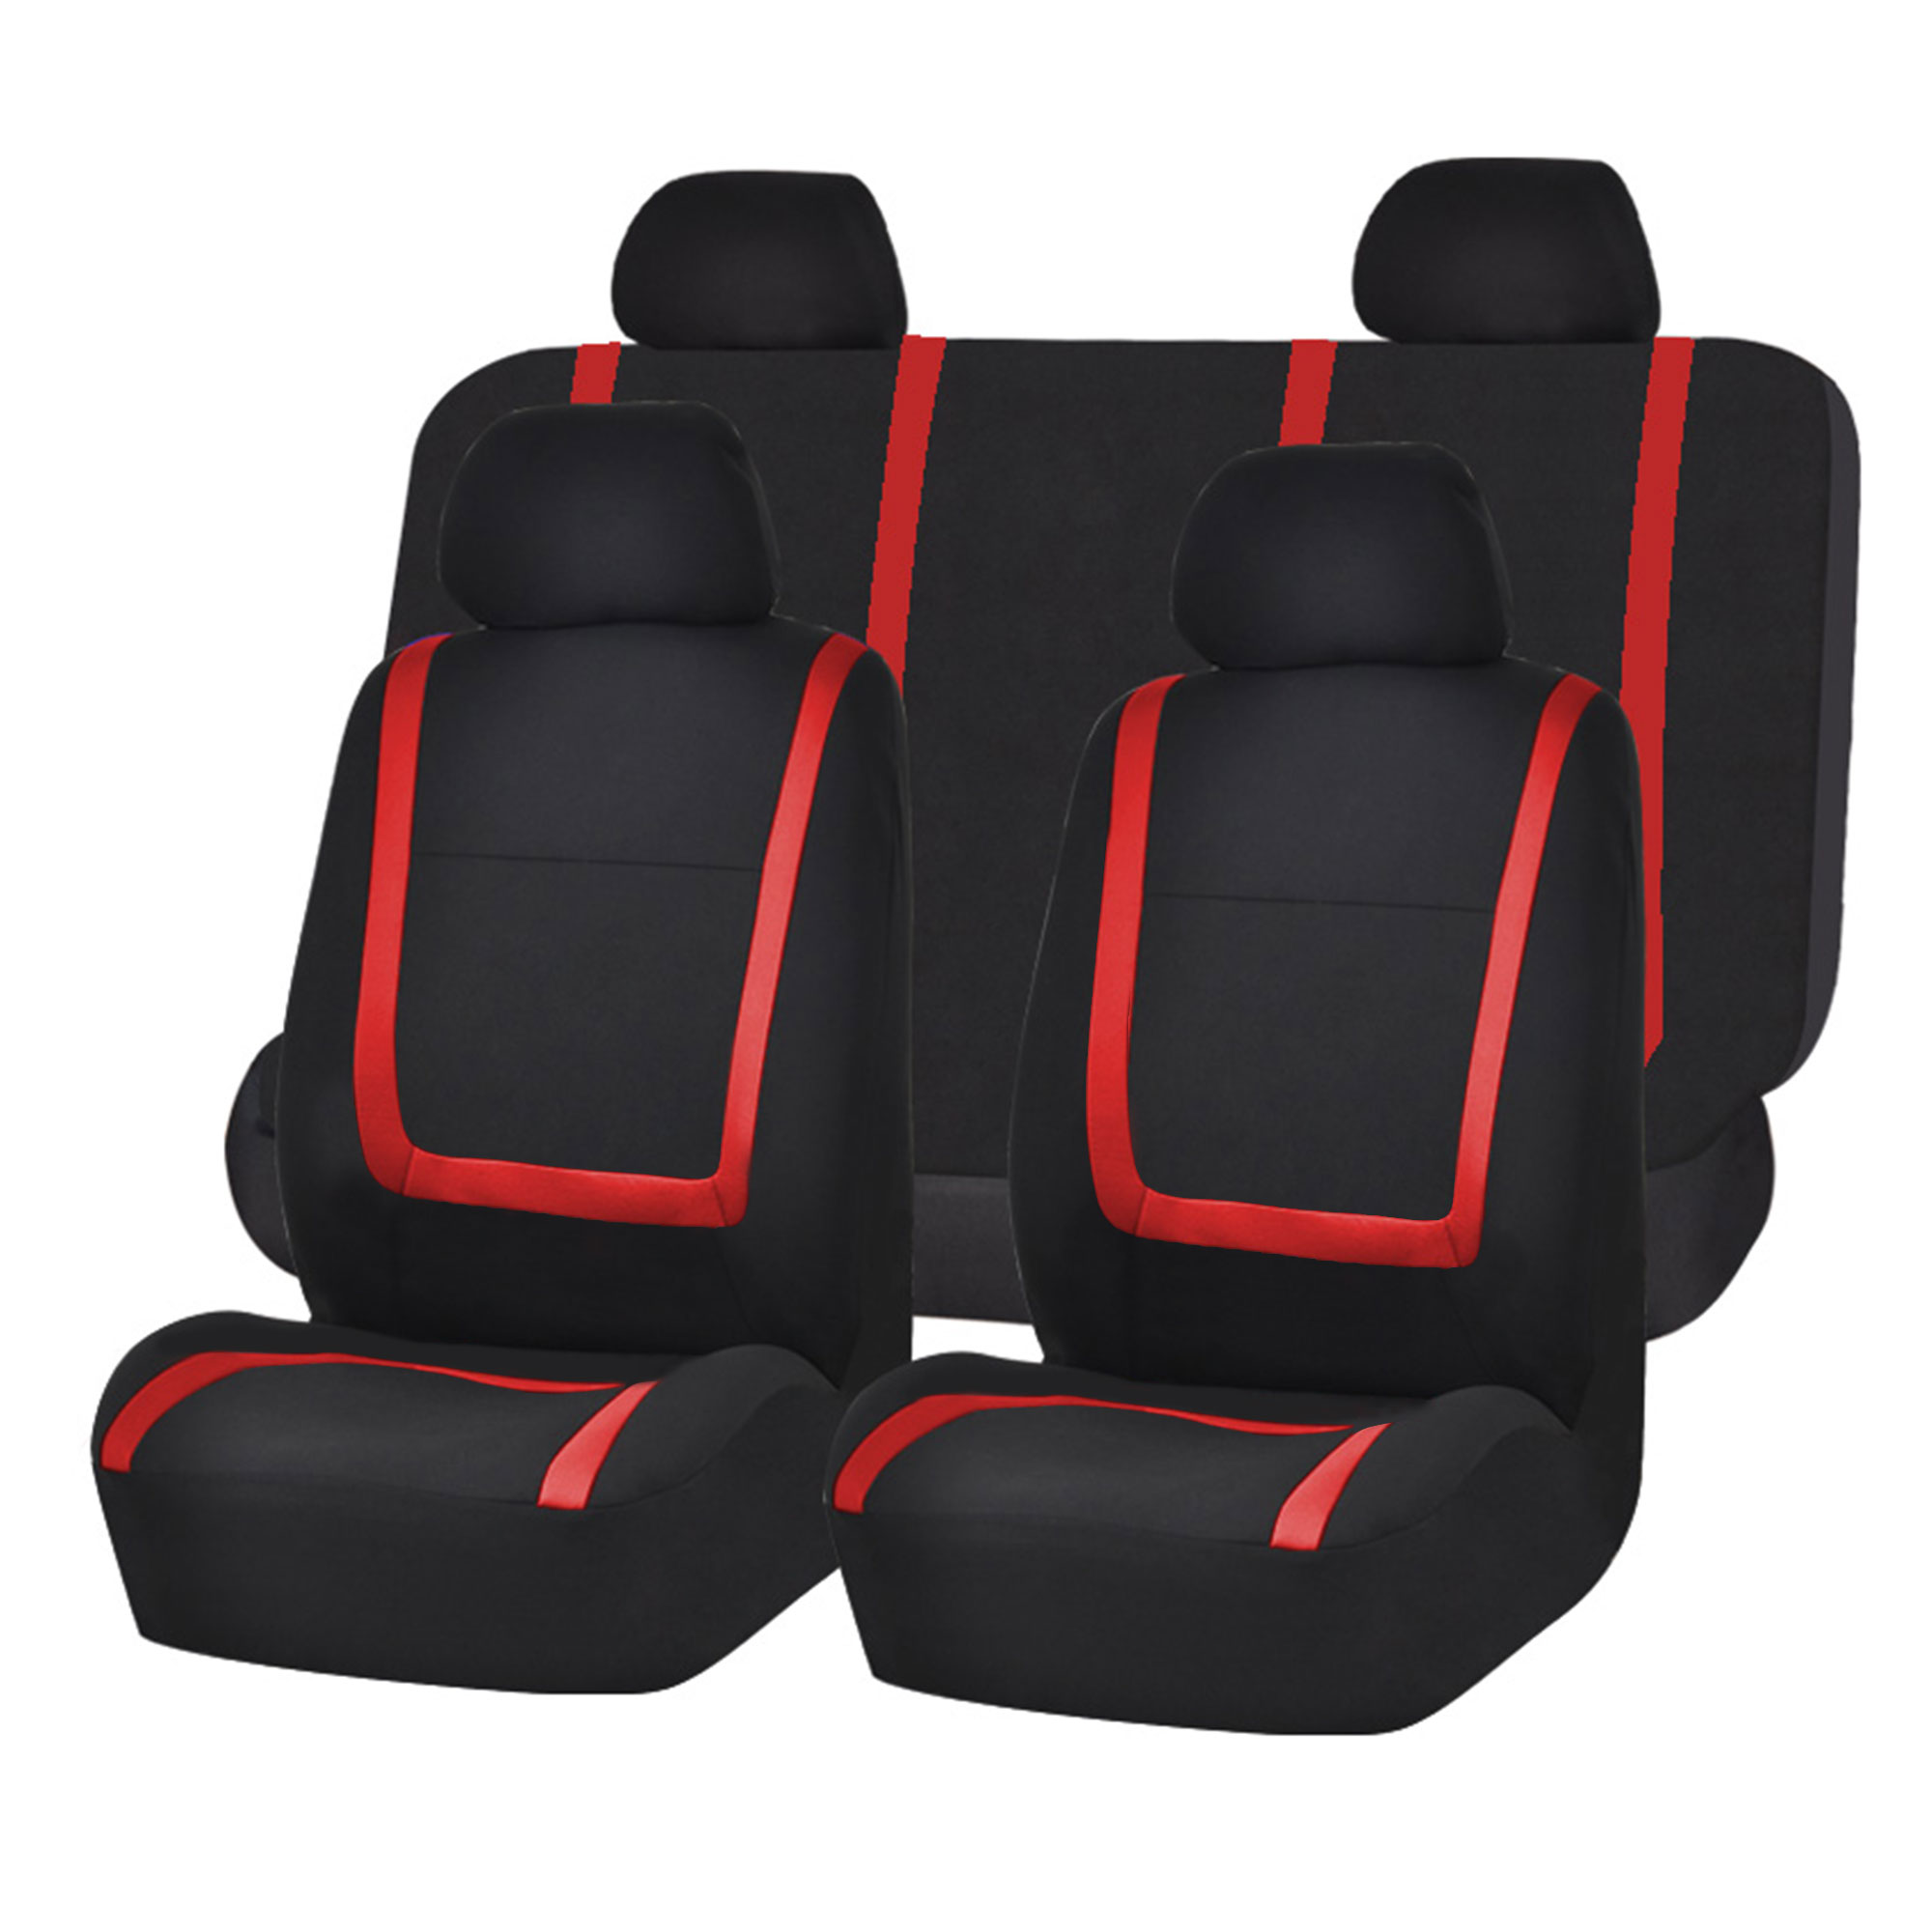 Auto Seat Covers For Car Sedan Truck Van Universal Seat